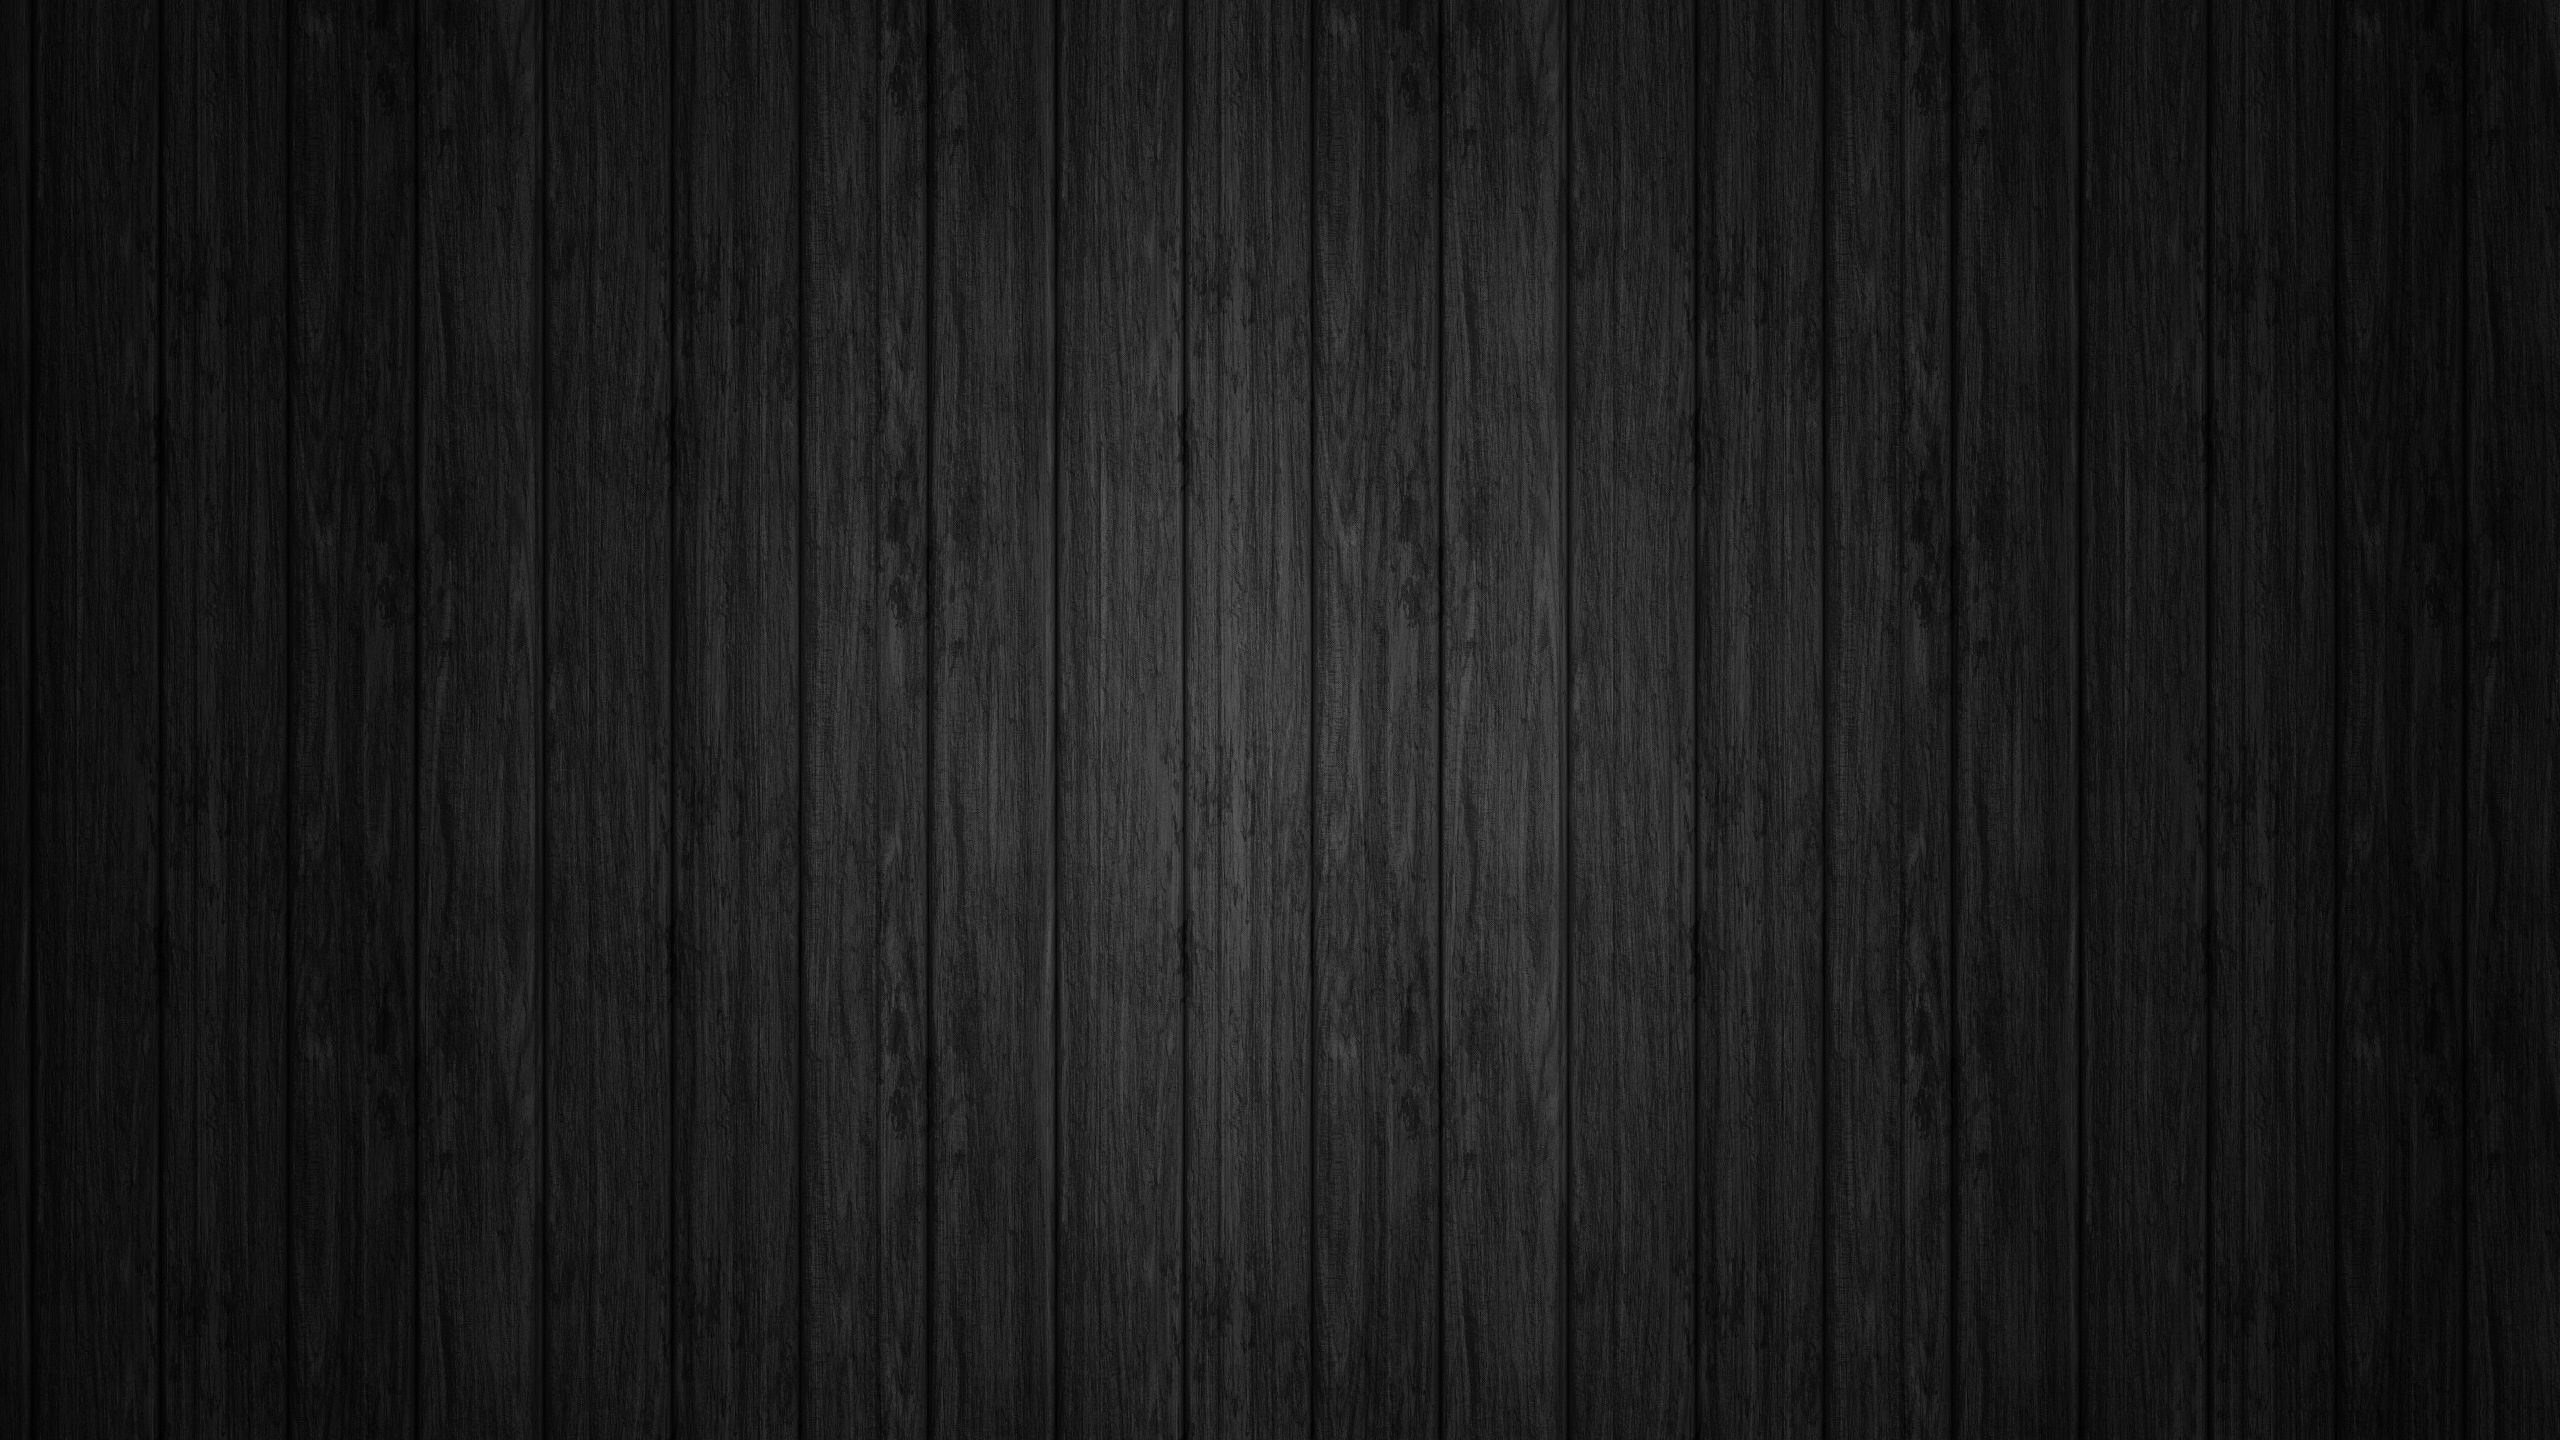 tumblr static tumblr static tumblr static black background wood 2560x1440